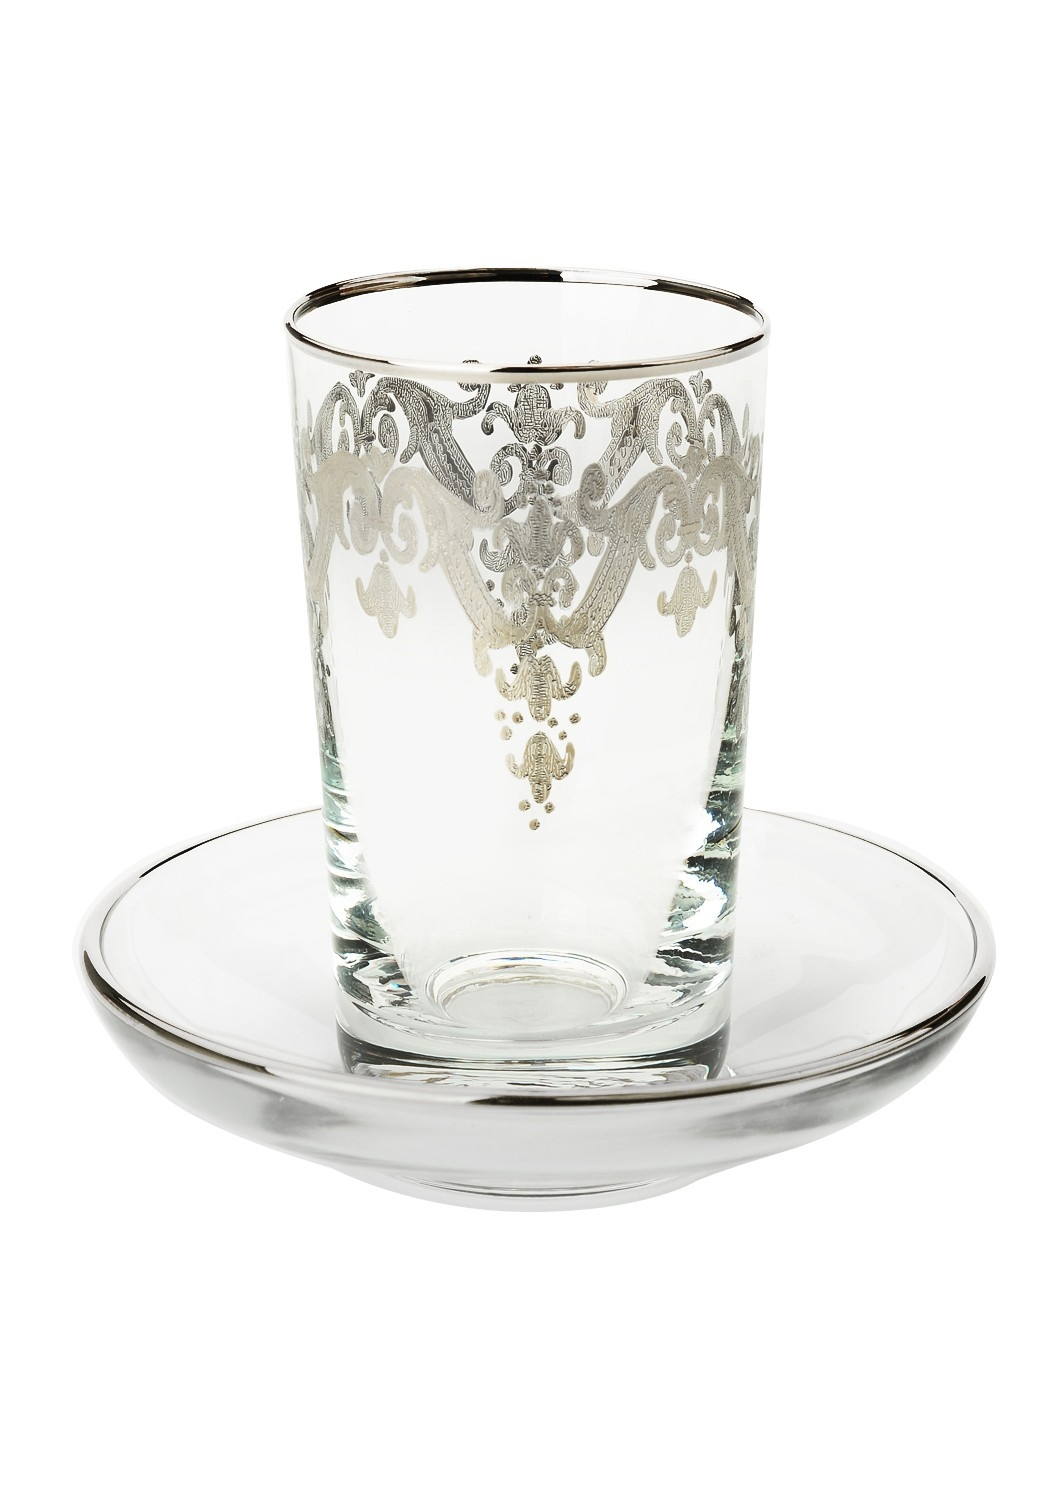 24k Silver Artwork Cups with Trays-Set/6